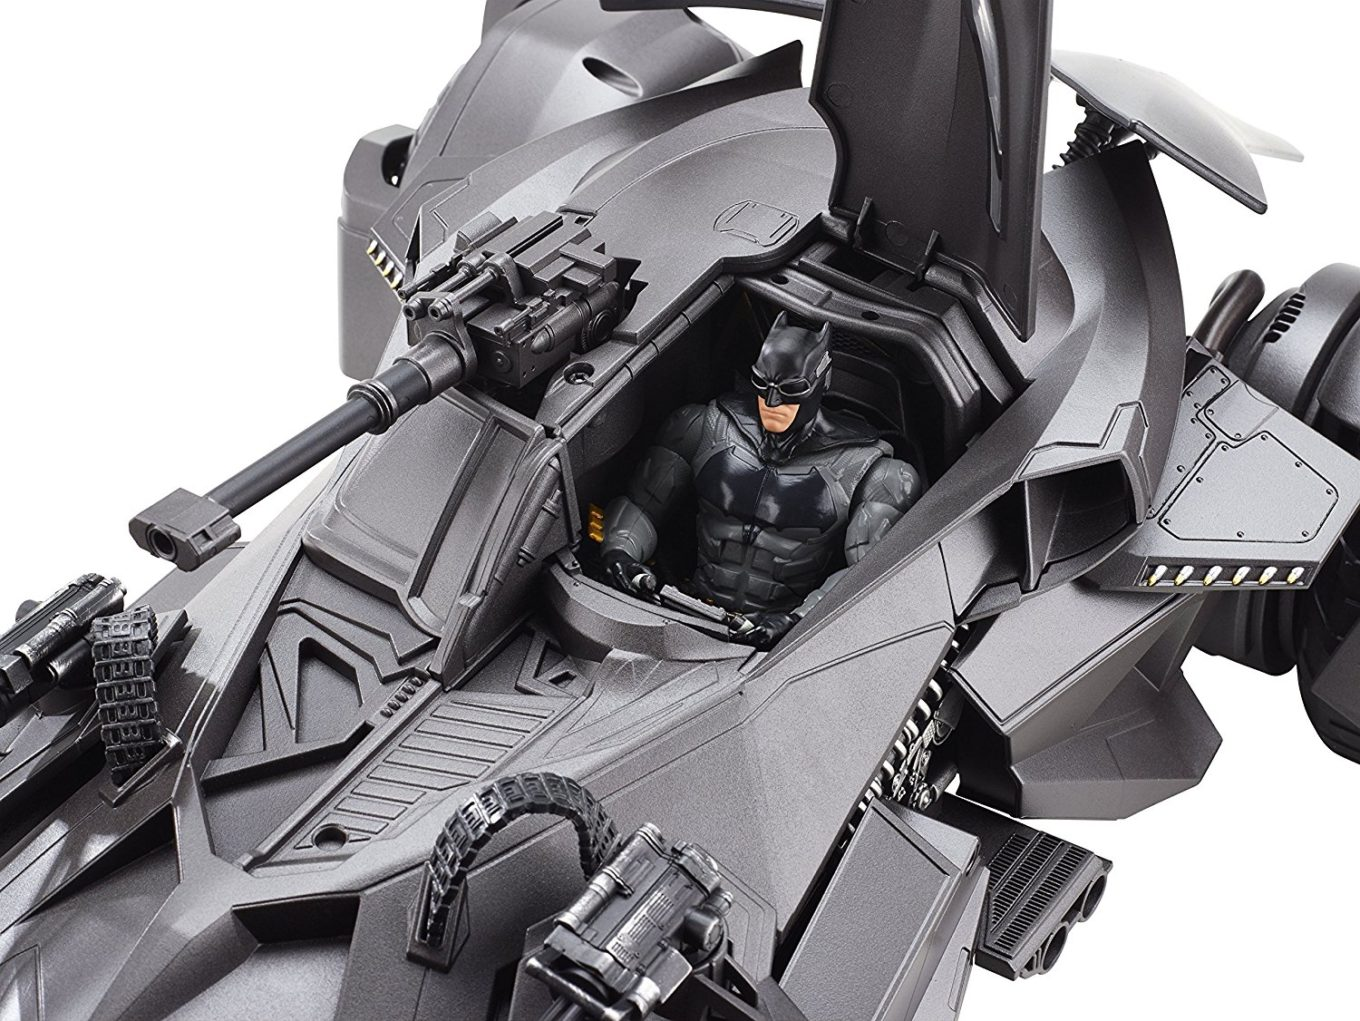 Mattel Remote Control Batmobile closeup. Batman Figure Riding in Batmobile from the Justice League movies